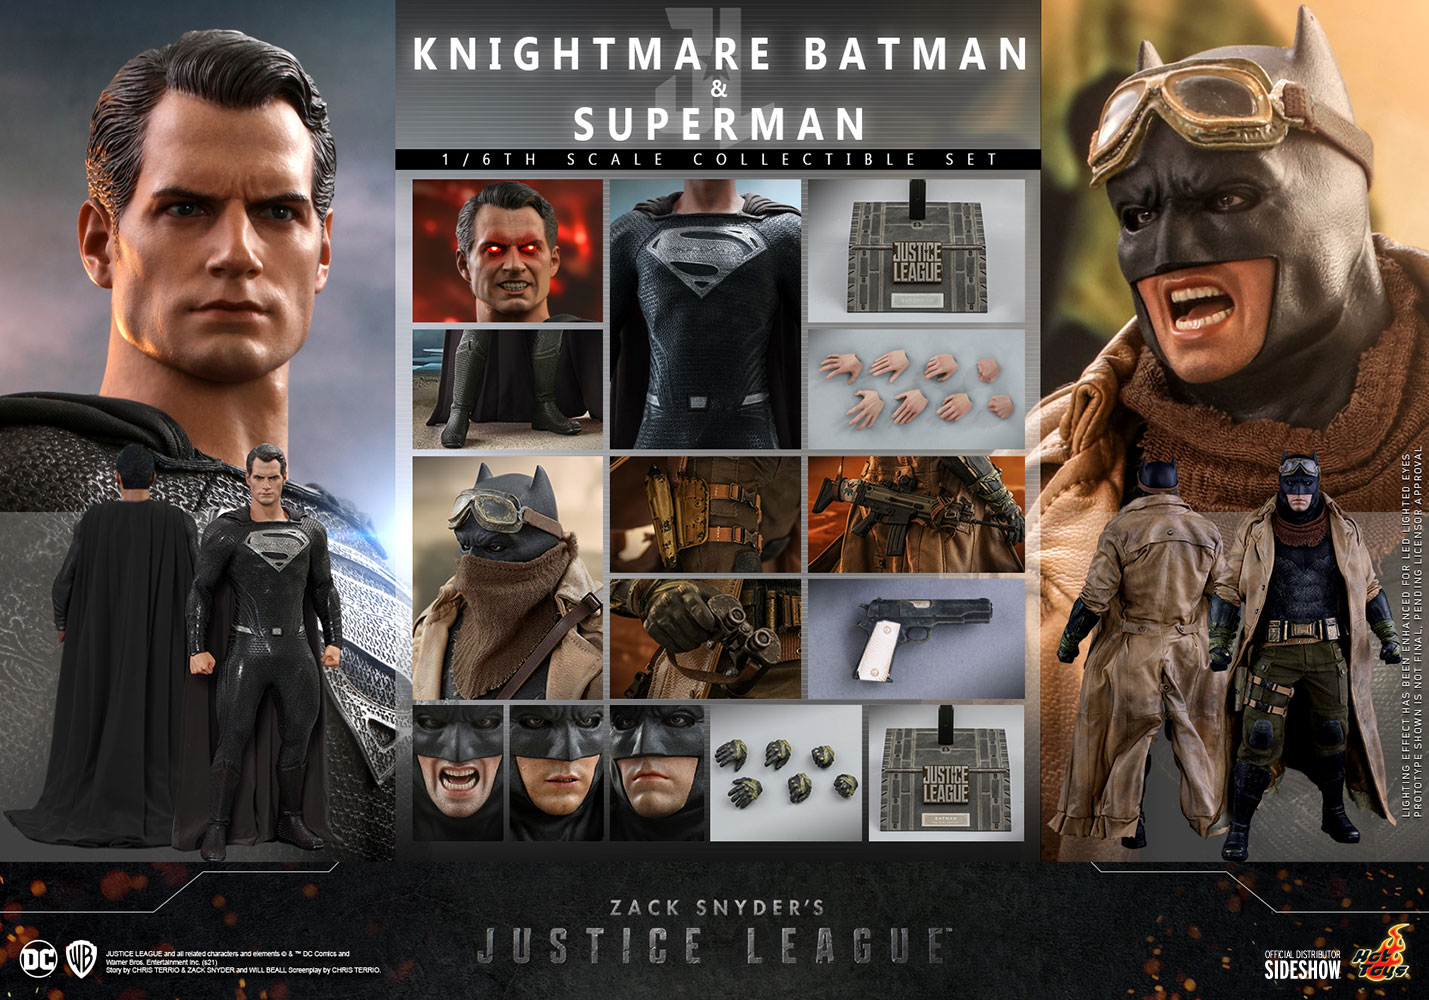 Hot Toys TMS038 Zack Snyder's Justice League Knightmare Batman & Superman 1/6 Scale Set